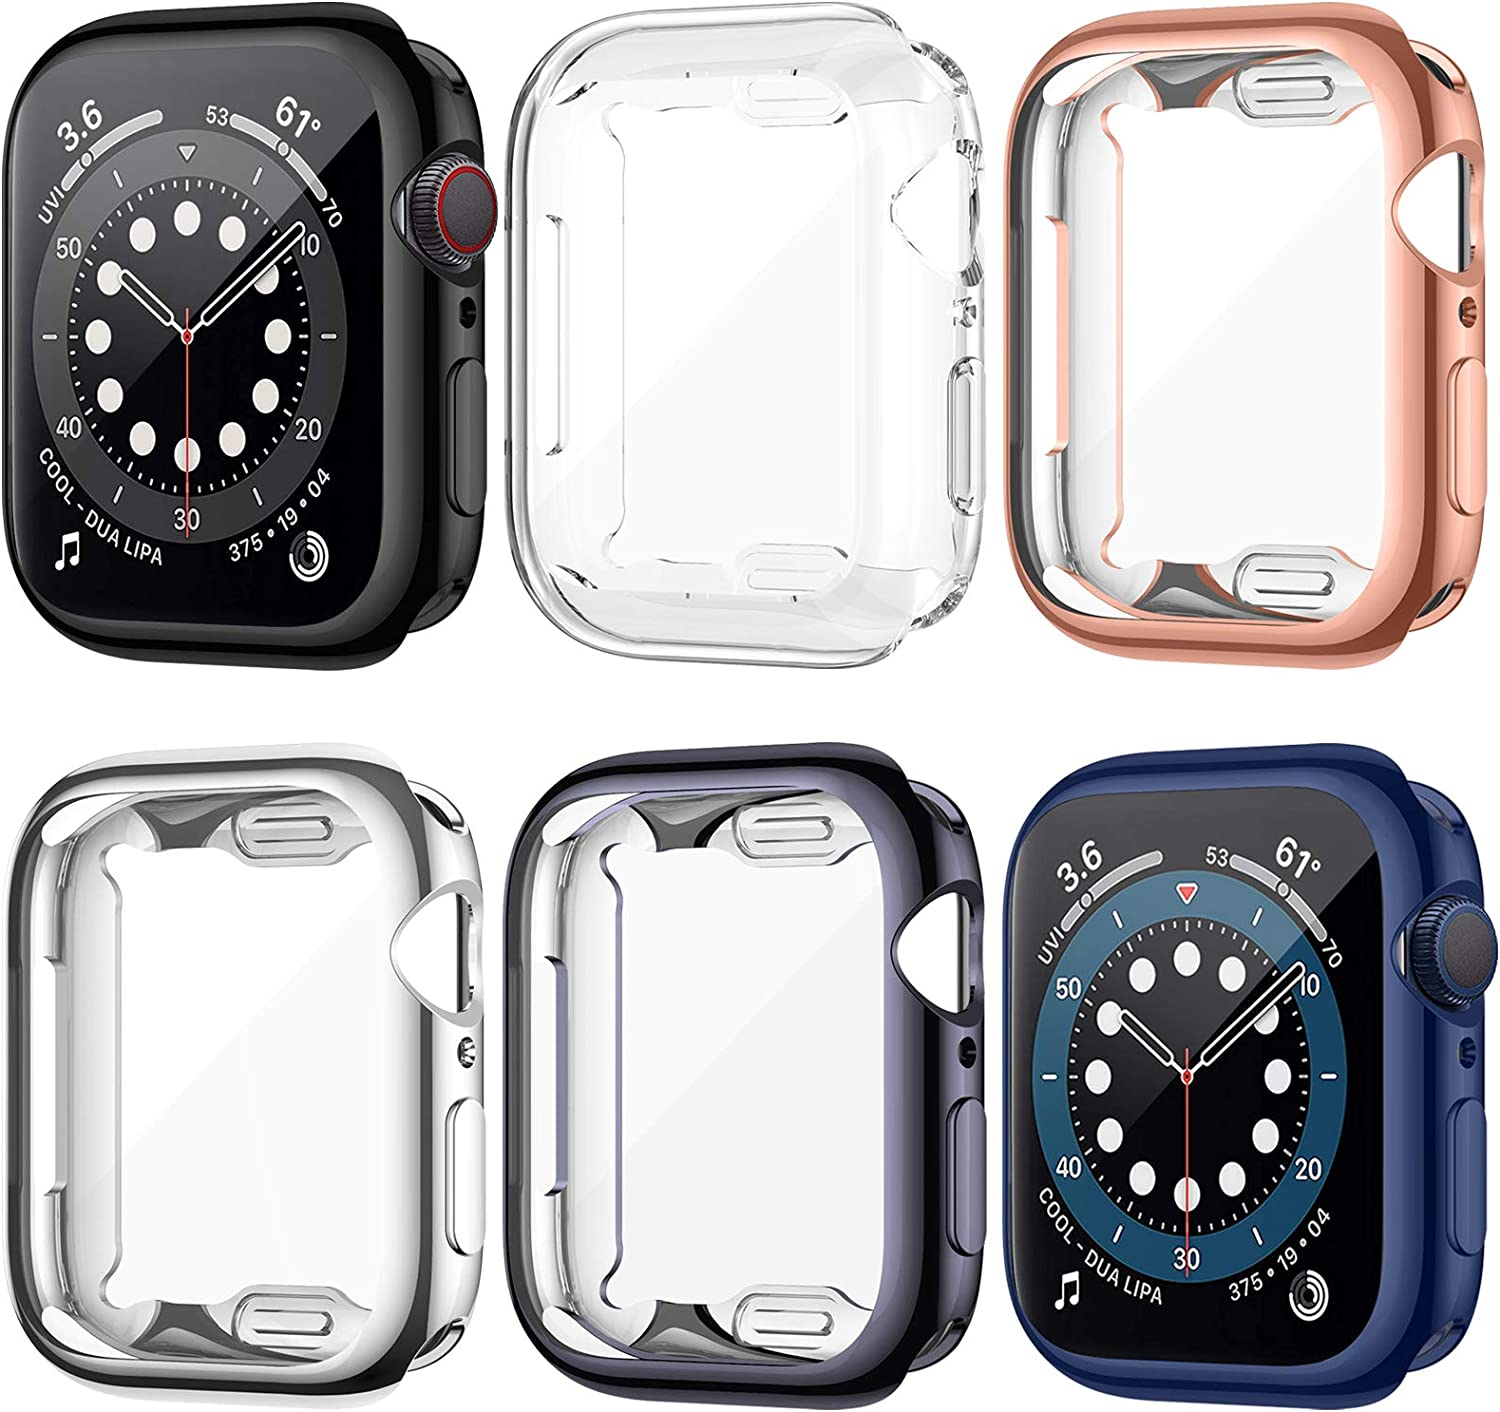 LORDSON 6 Pack Screen Protector Case Compatible with Apple Watch SE Series 6/5/4 44mm, Overall Soft TPU Protective Cover Full Coverage Case Bumper Watch Face Cover Compatible with iWatch SE/6/5/4